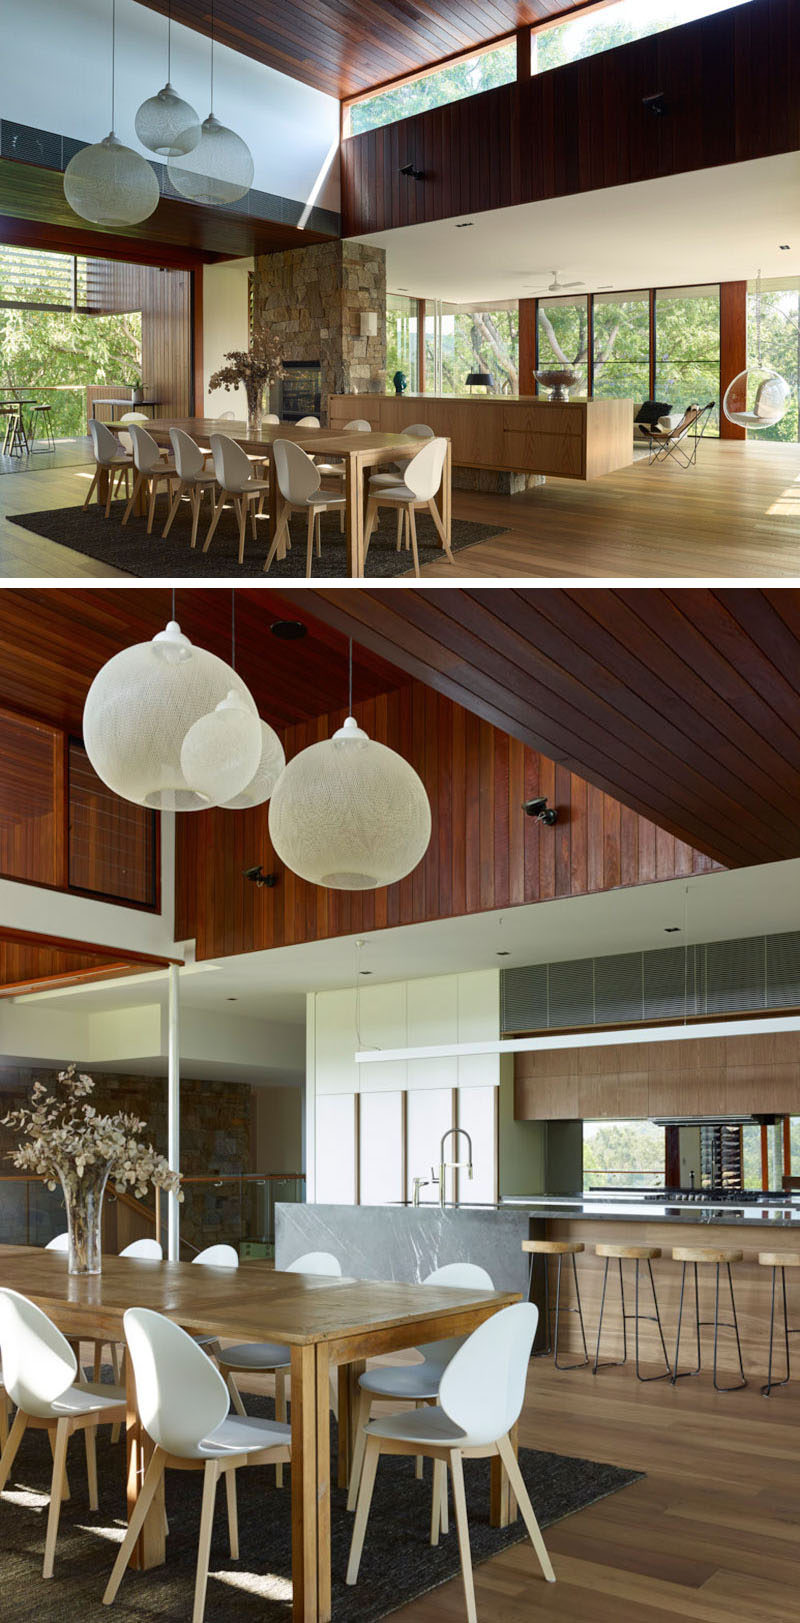 Three white pendant lights and a rug help to anchor the large 12-seater dining table in the open floor plan of this home.